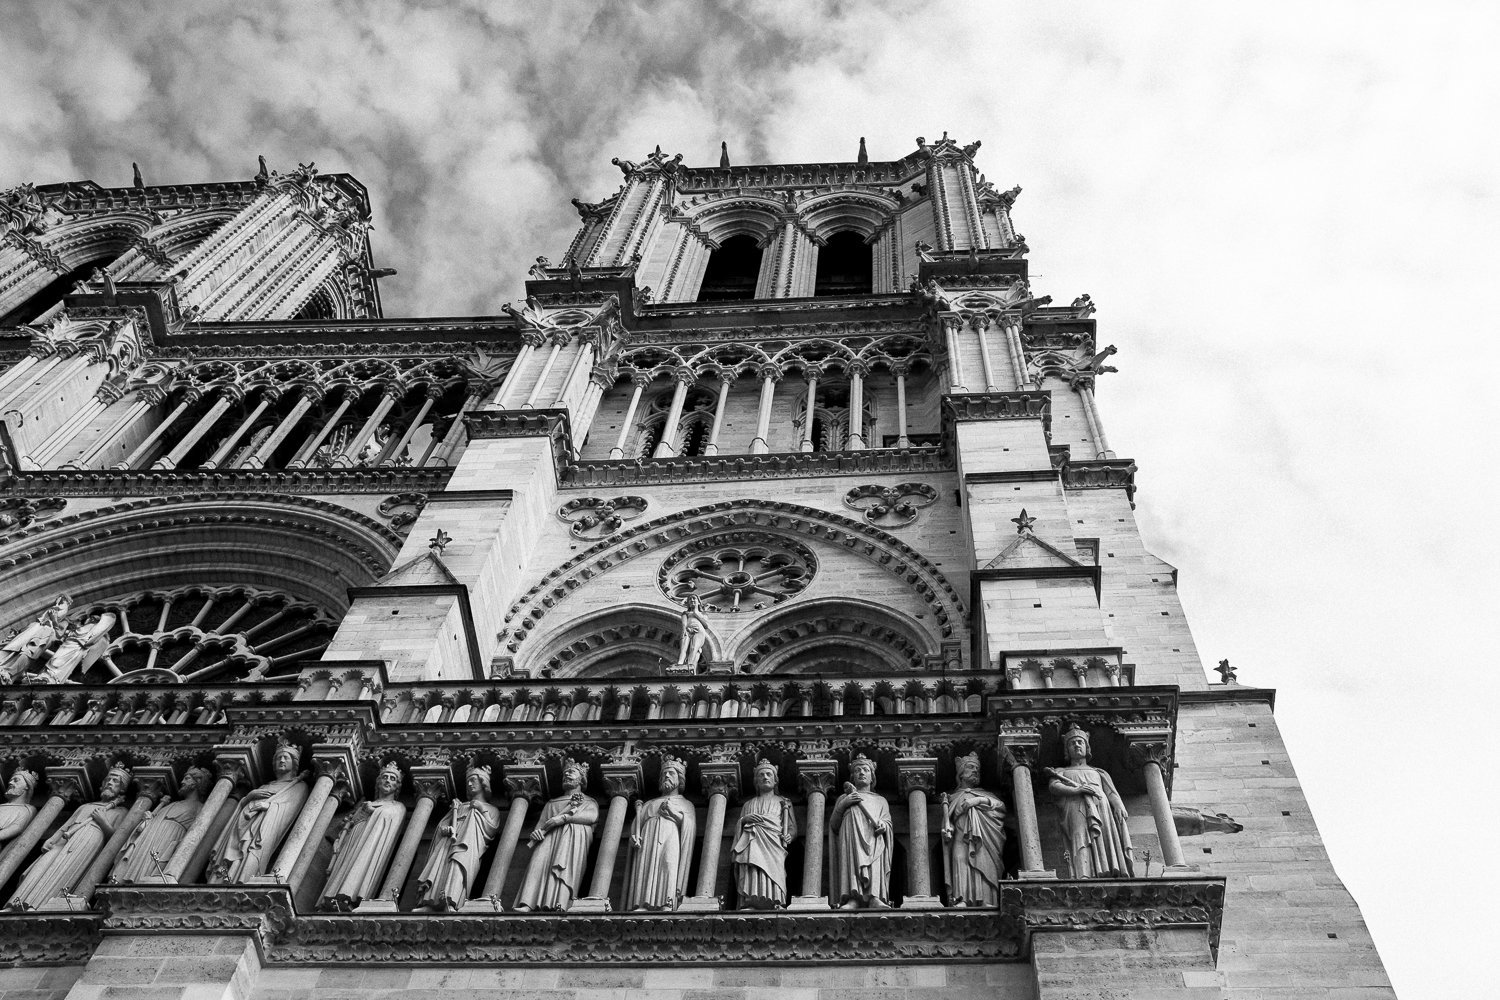 The Heart of Paris - Notre Dame